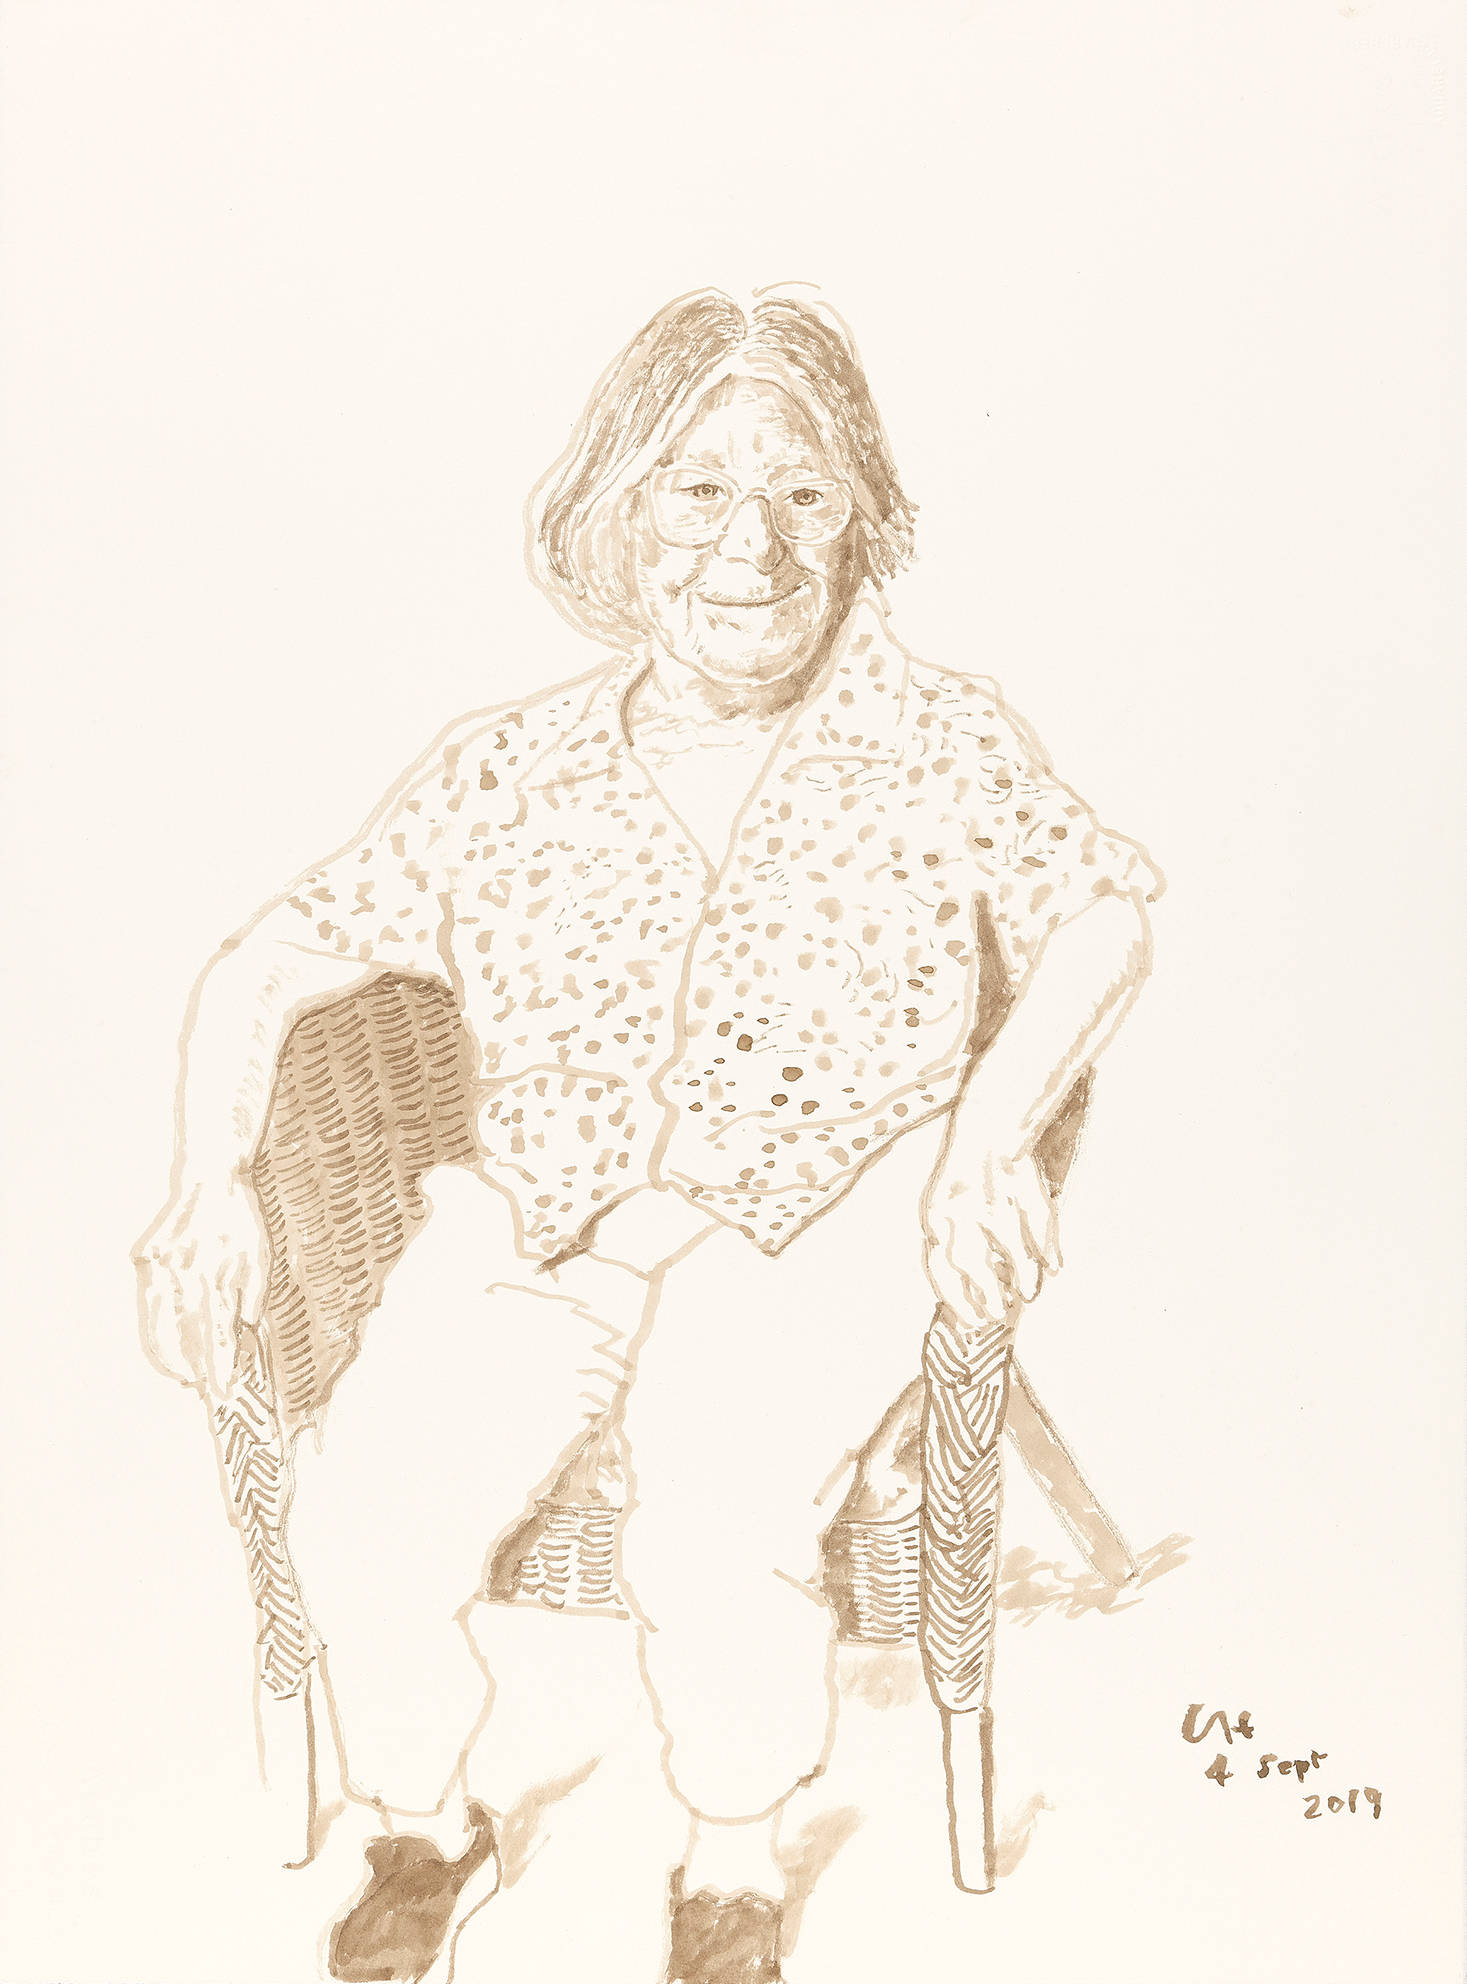 Margaret Hockney, 4 Sept 2019